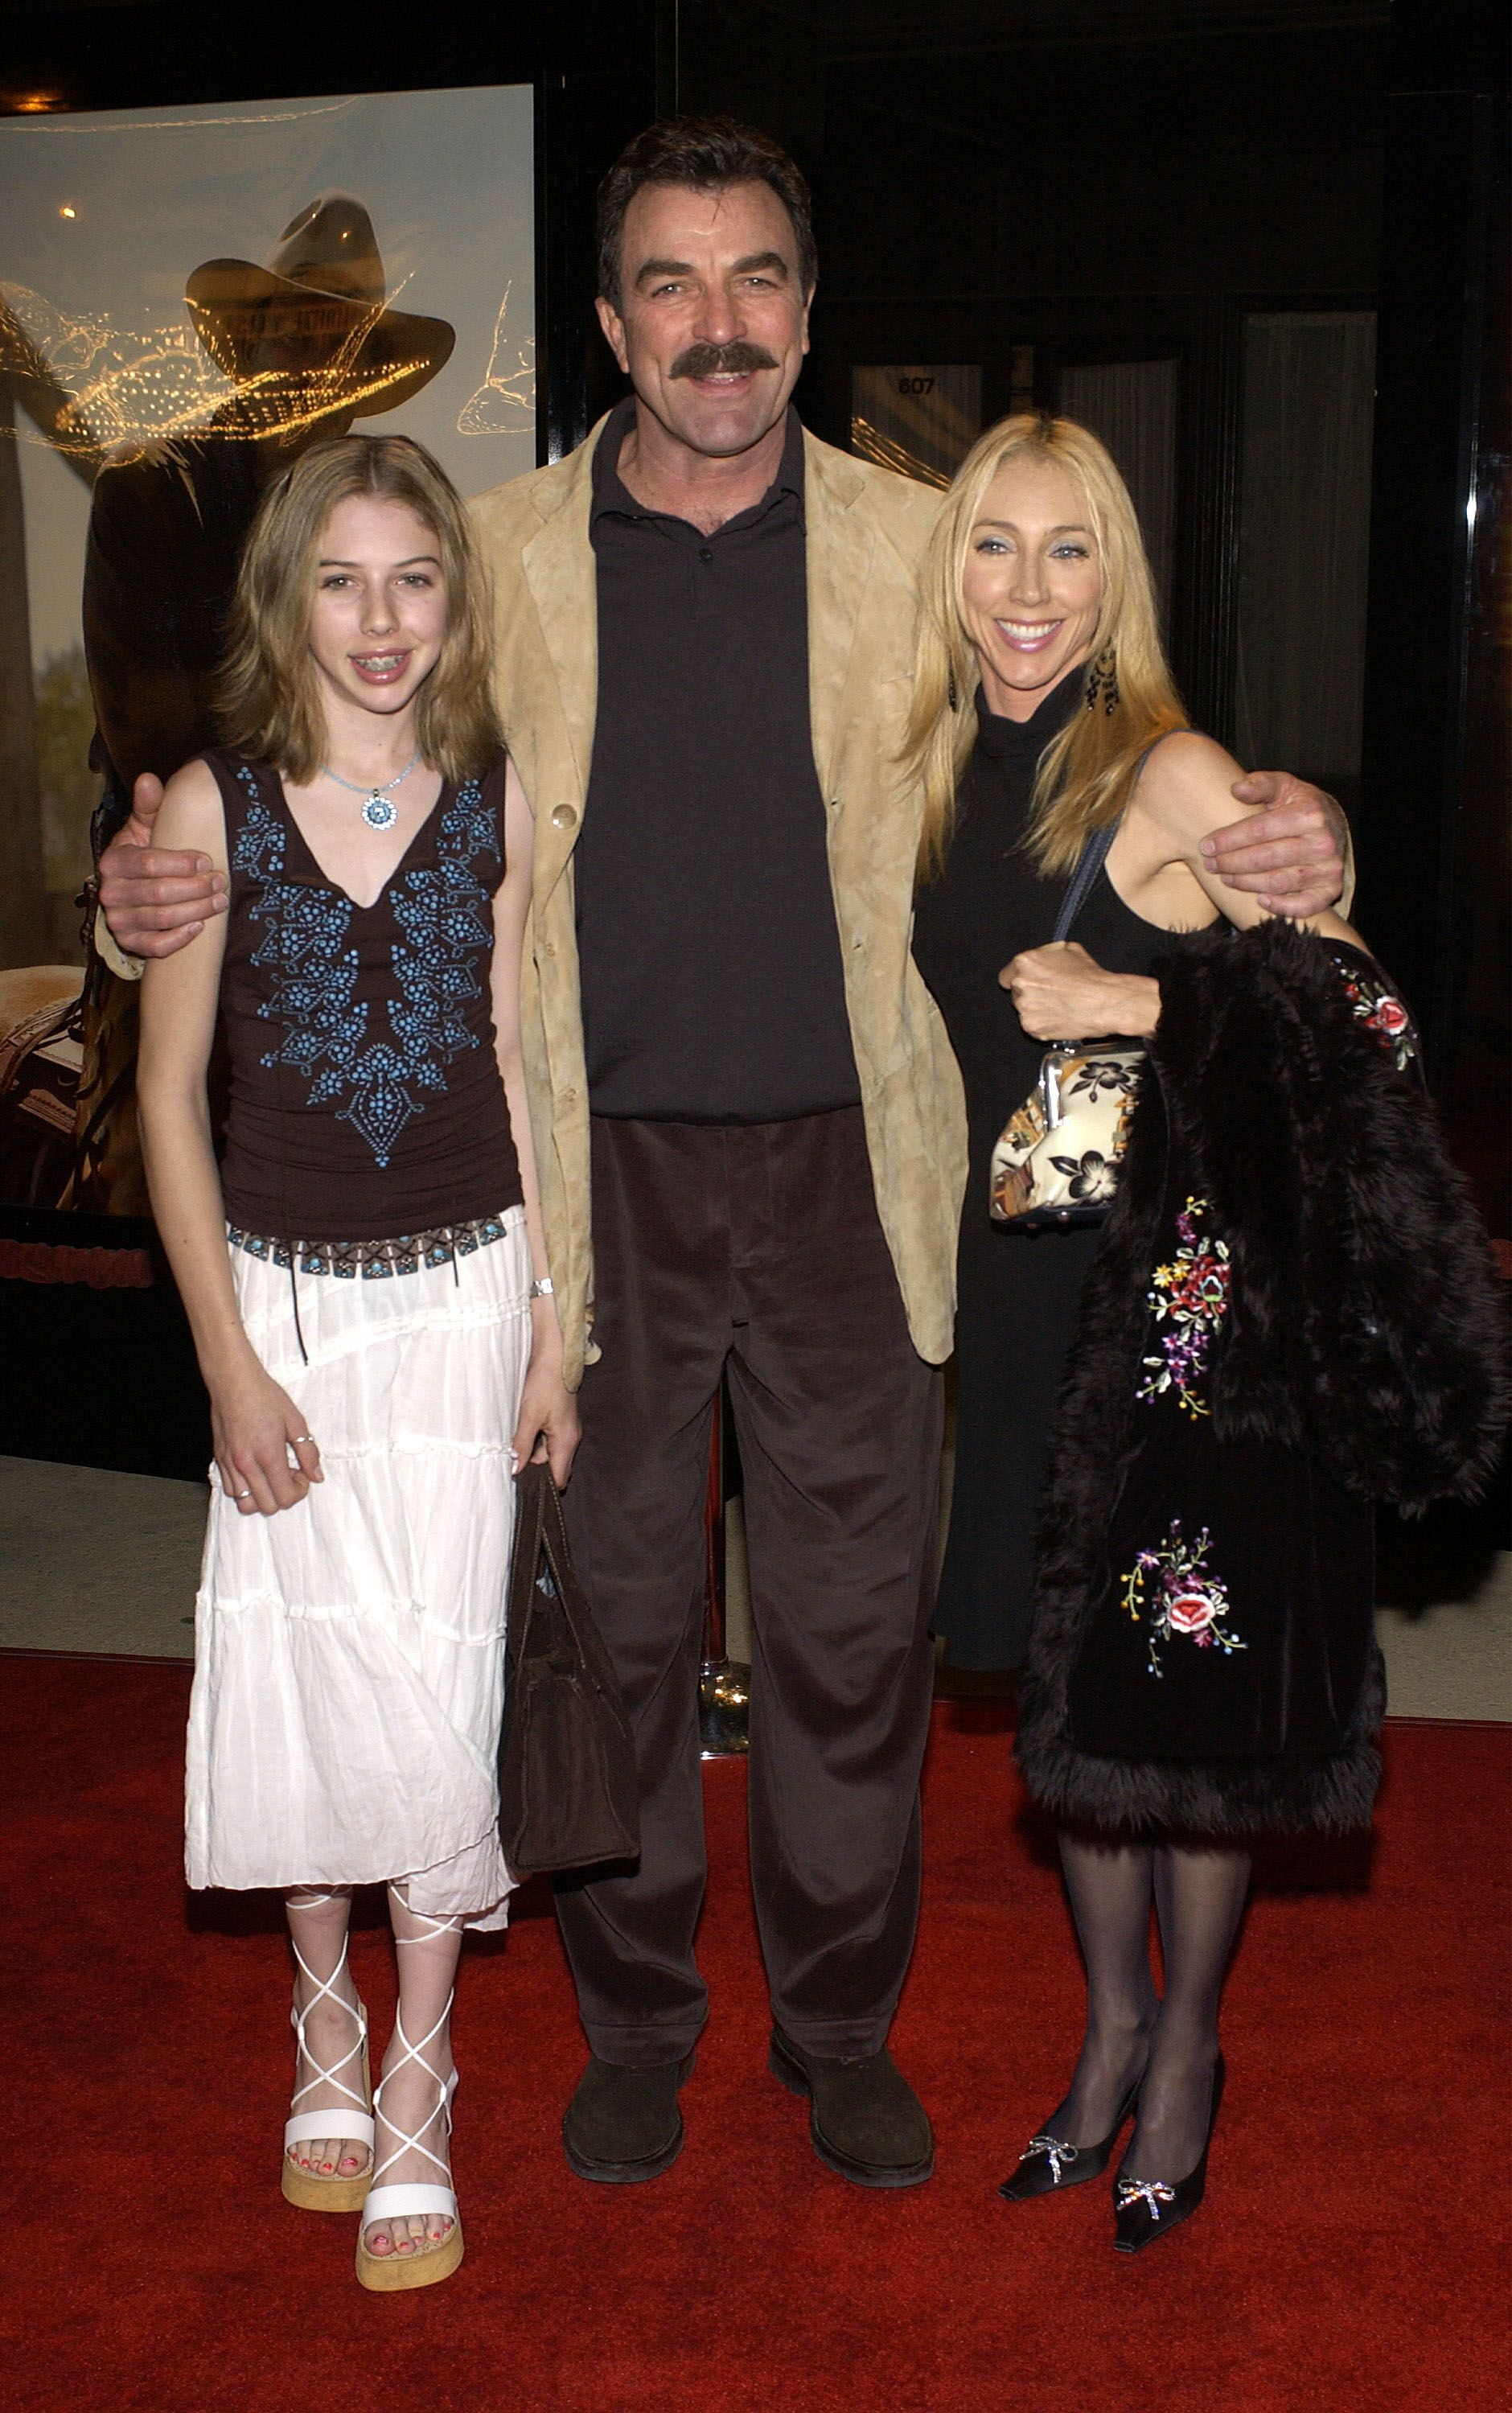 """Tom Selleck, wife Jillie and daughter Hannah at the premiere of """"Monte Walsh"""" in  2003   Source: Getty Images"""